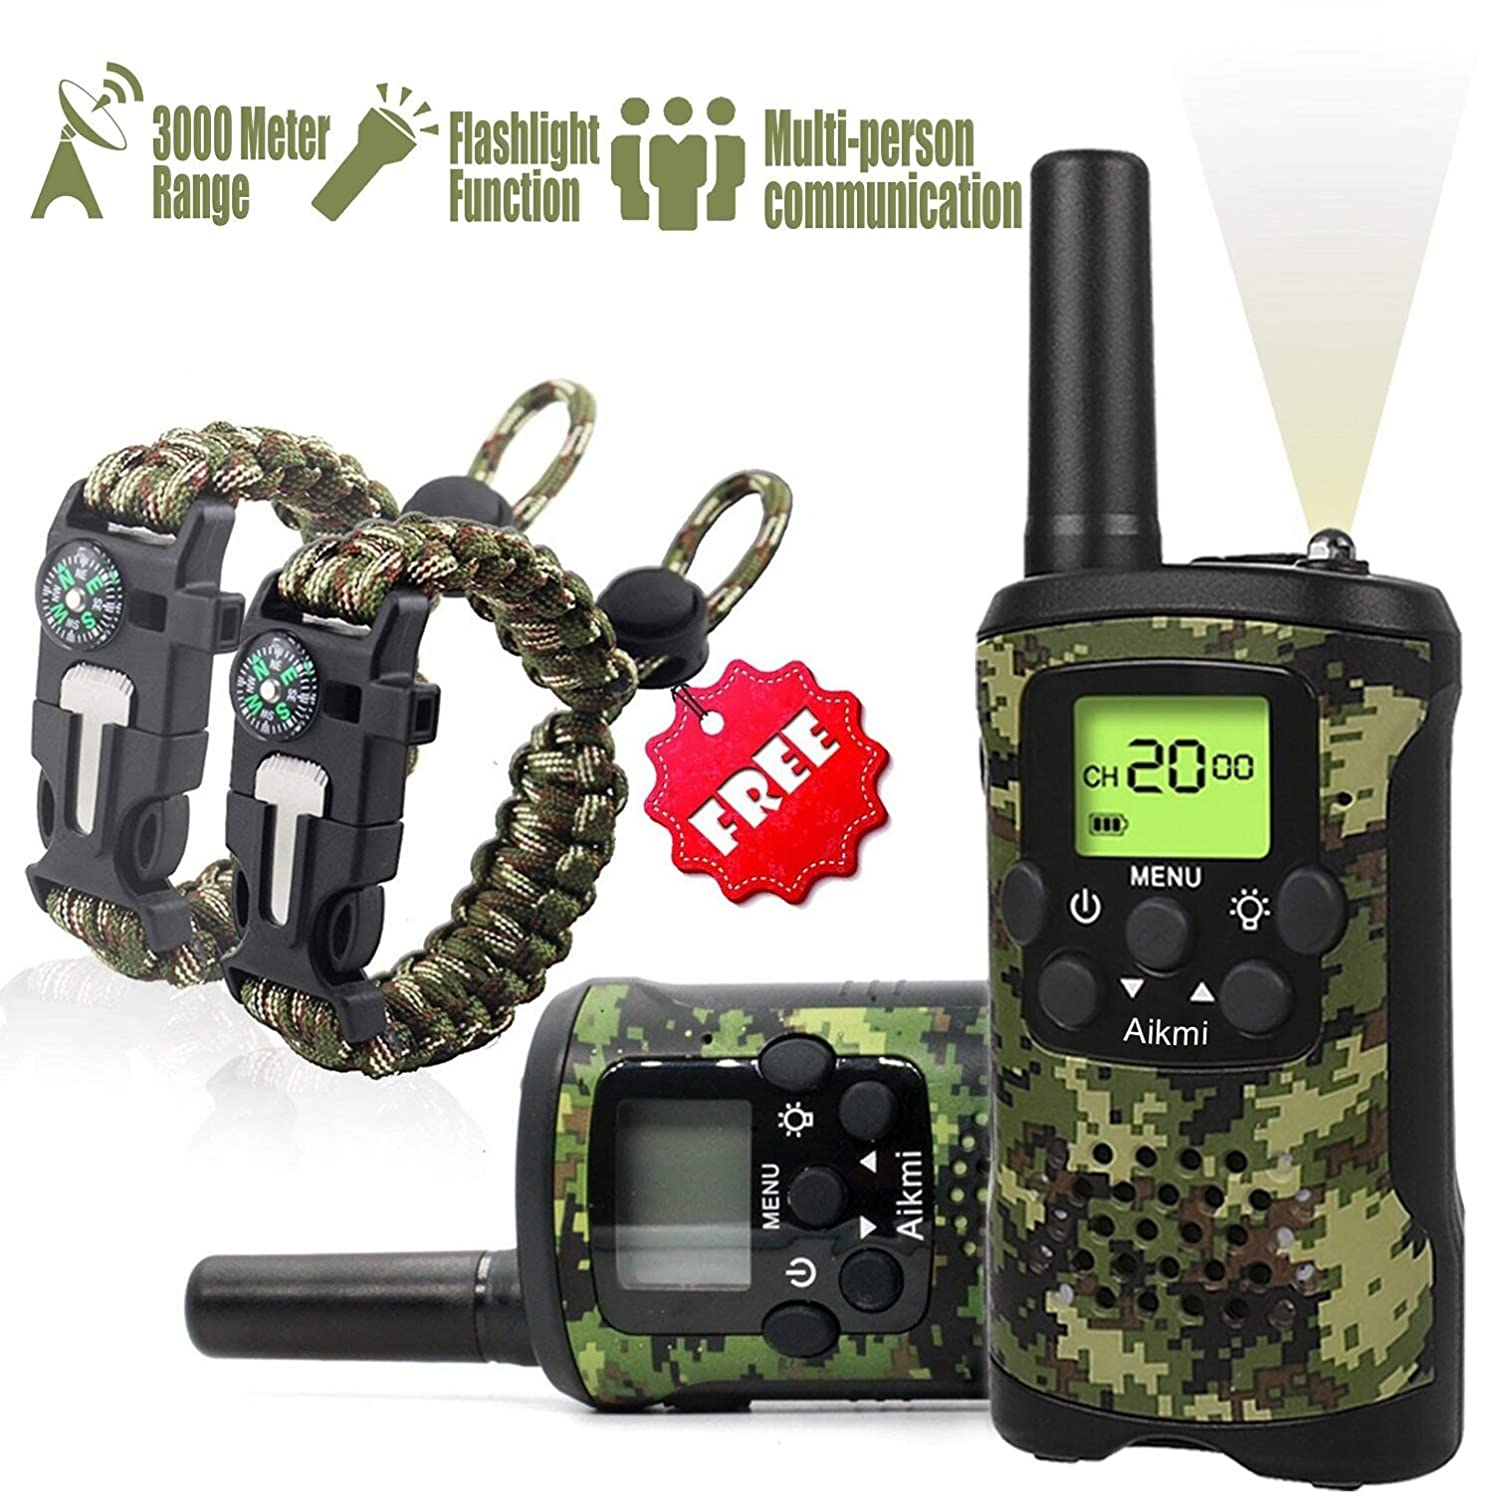 Aikmi kid's walkie-talkie set